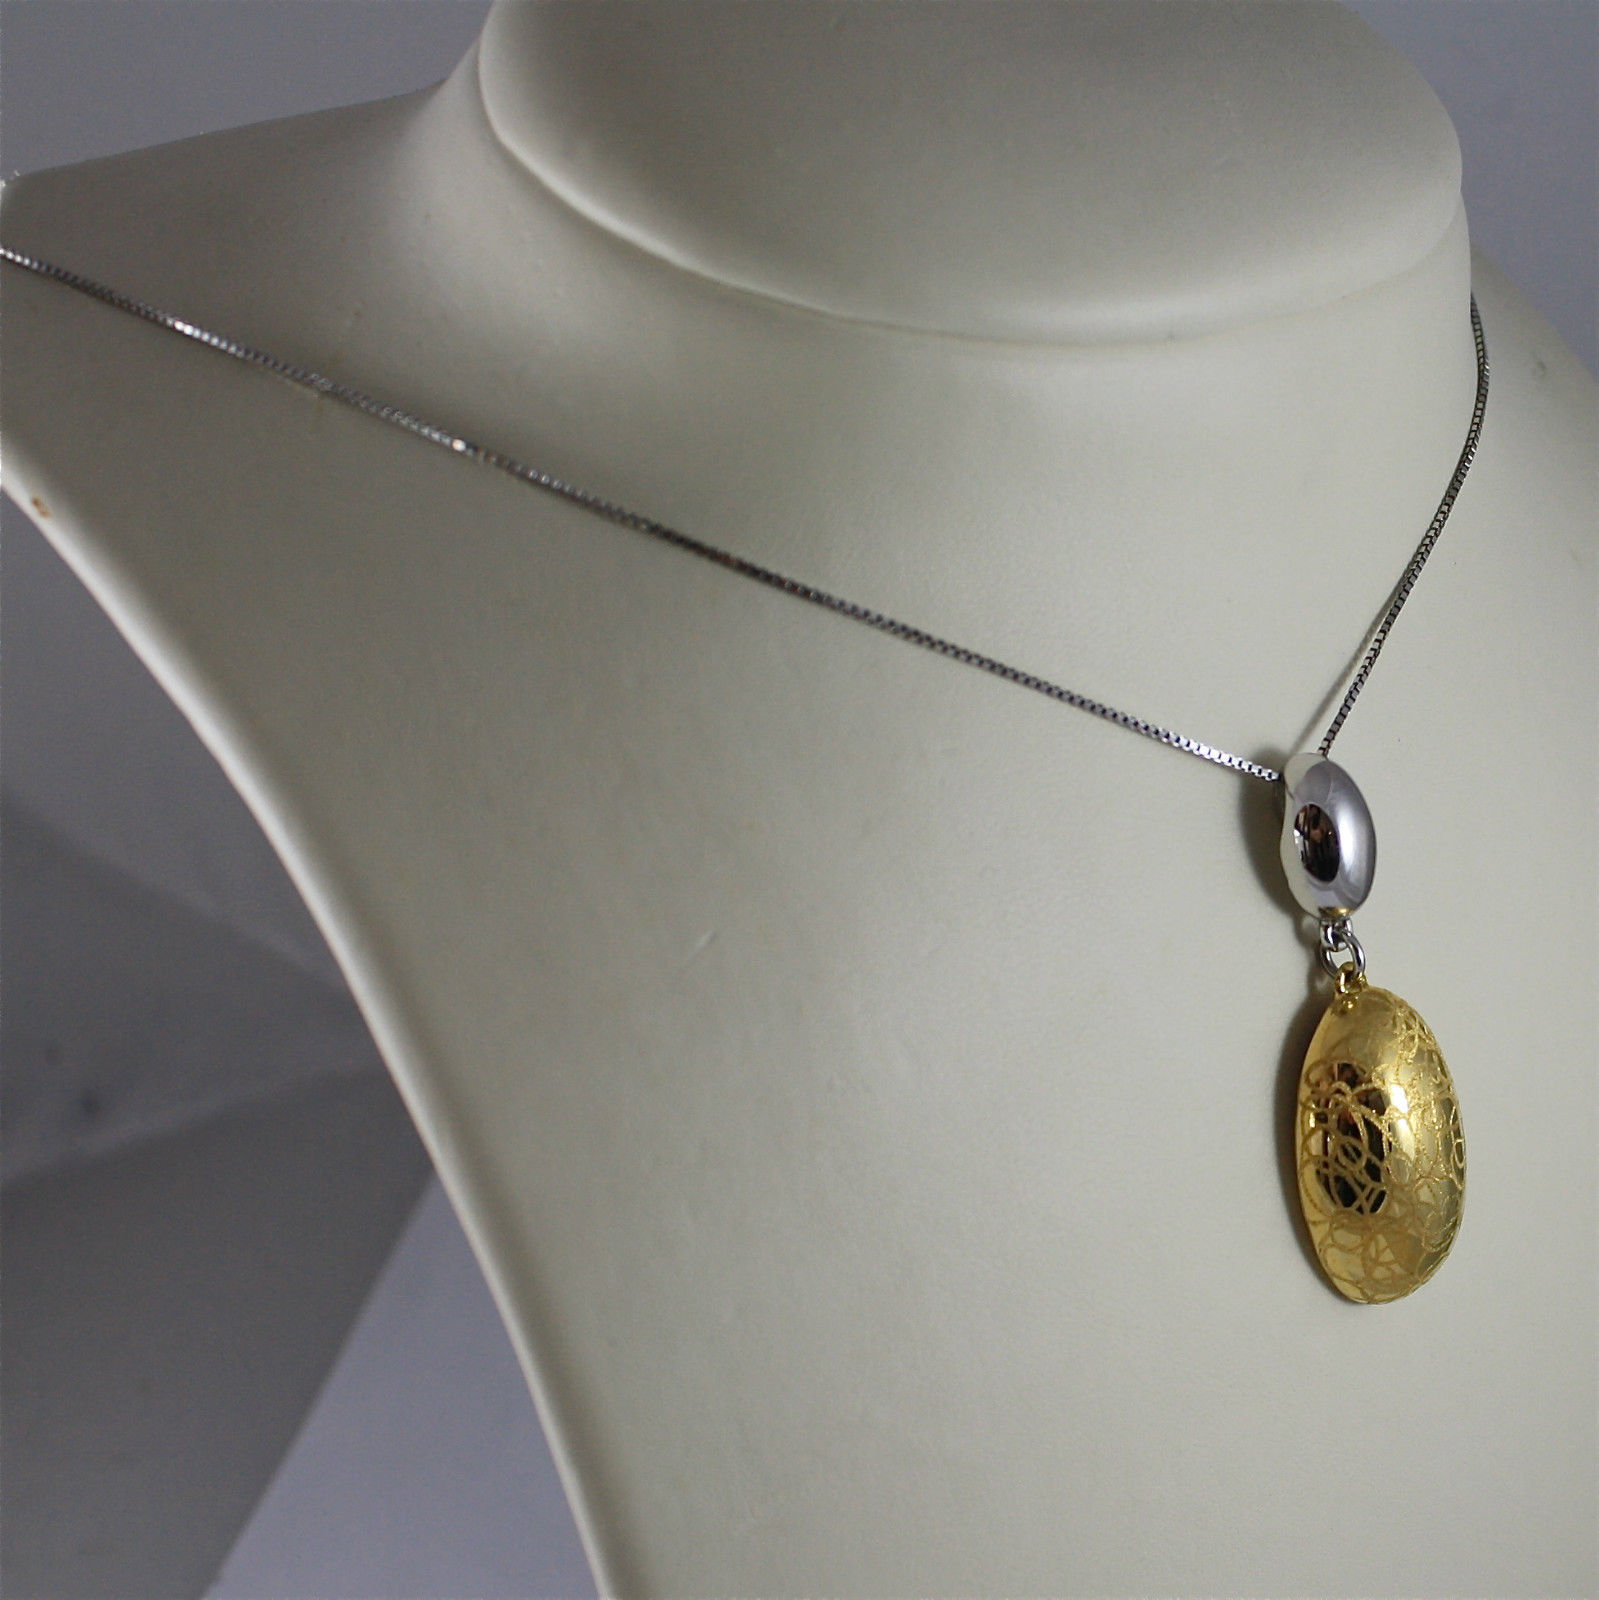 .925 RHODIUM SILVER NECKLACE, GOLD PLATED PENDANT, OVAL SHAPED, VENETIAN MESH.